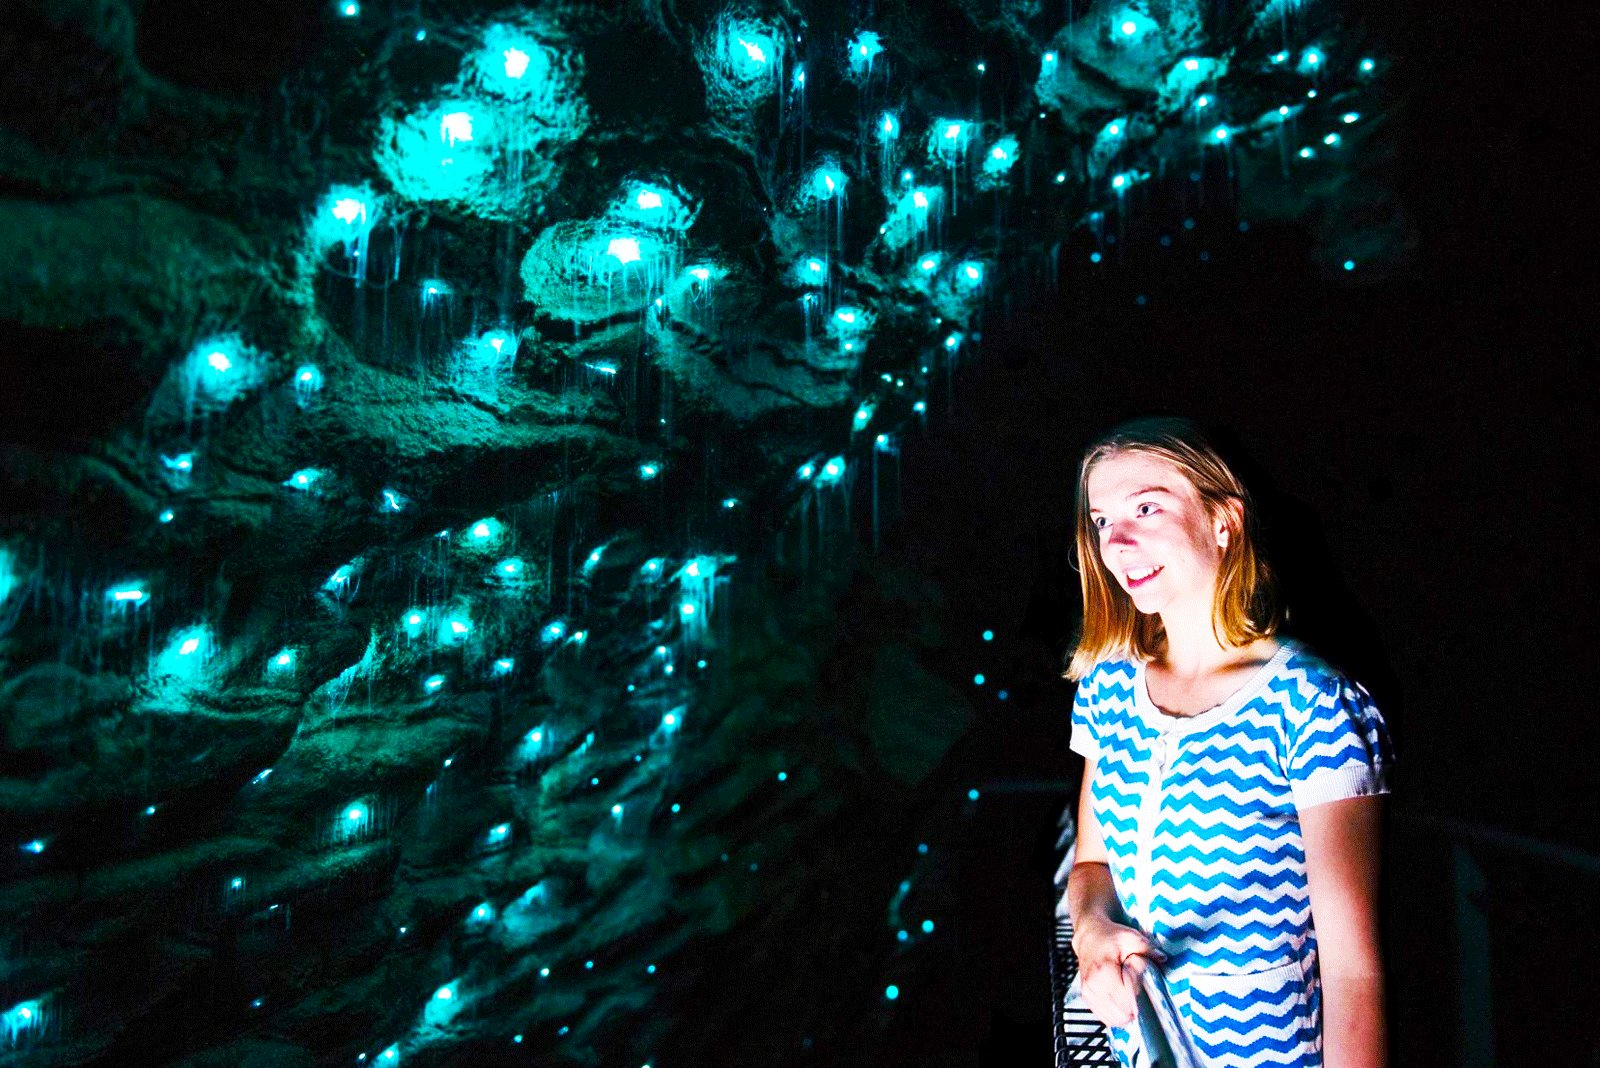 How to get into the glow worm cave in Hamilton